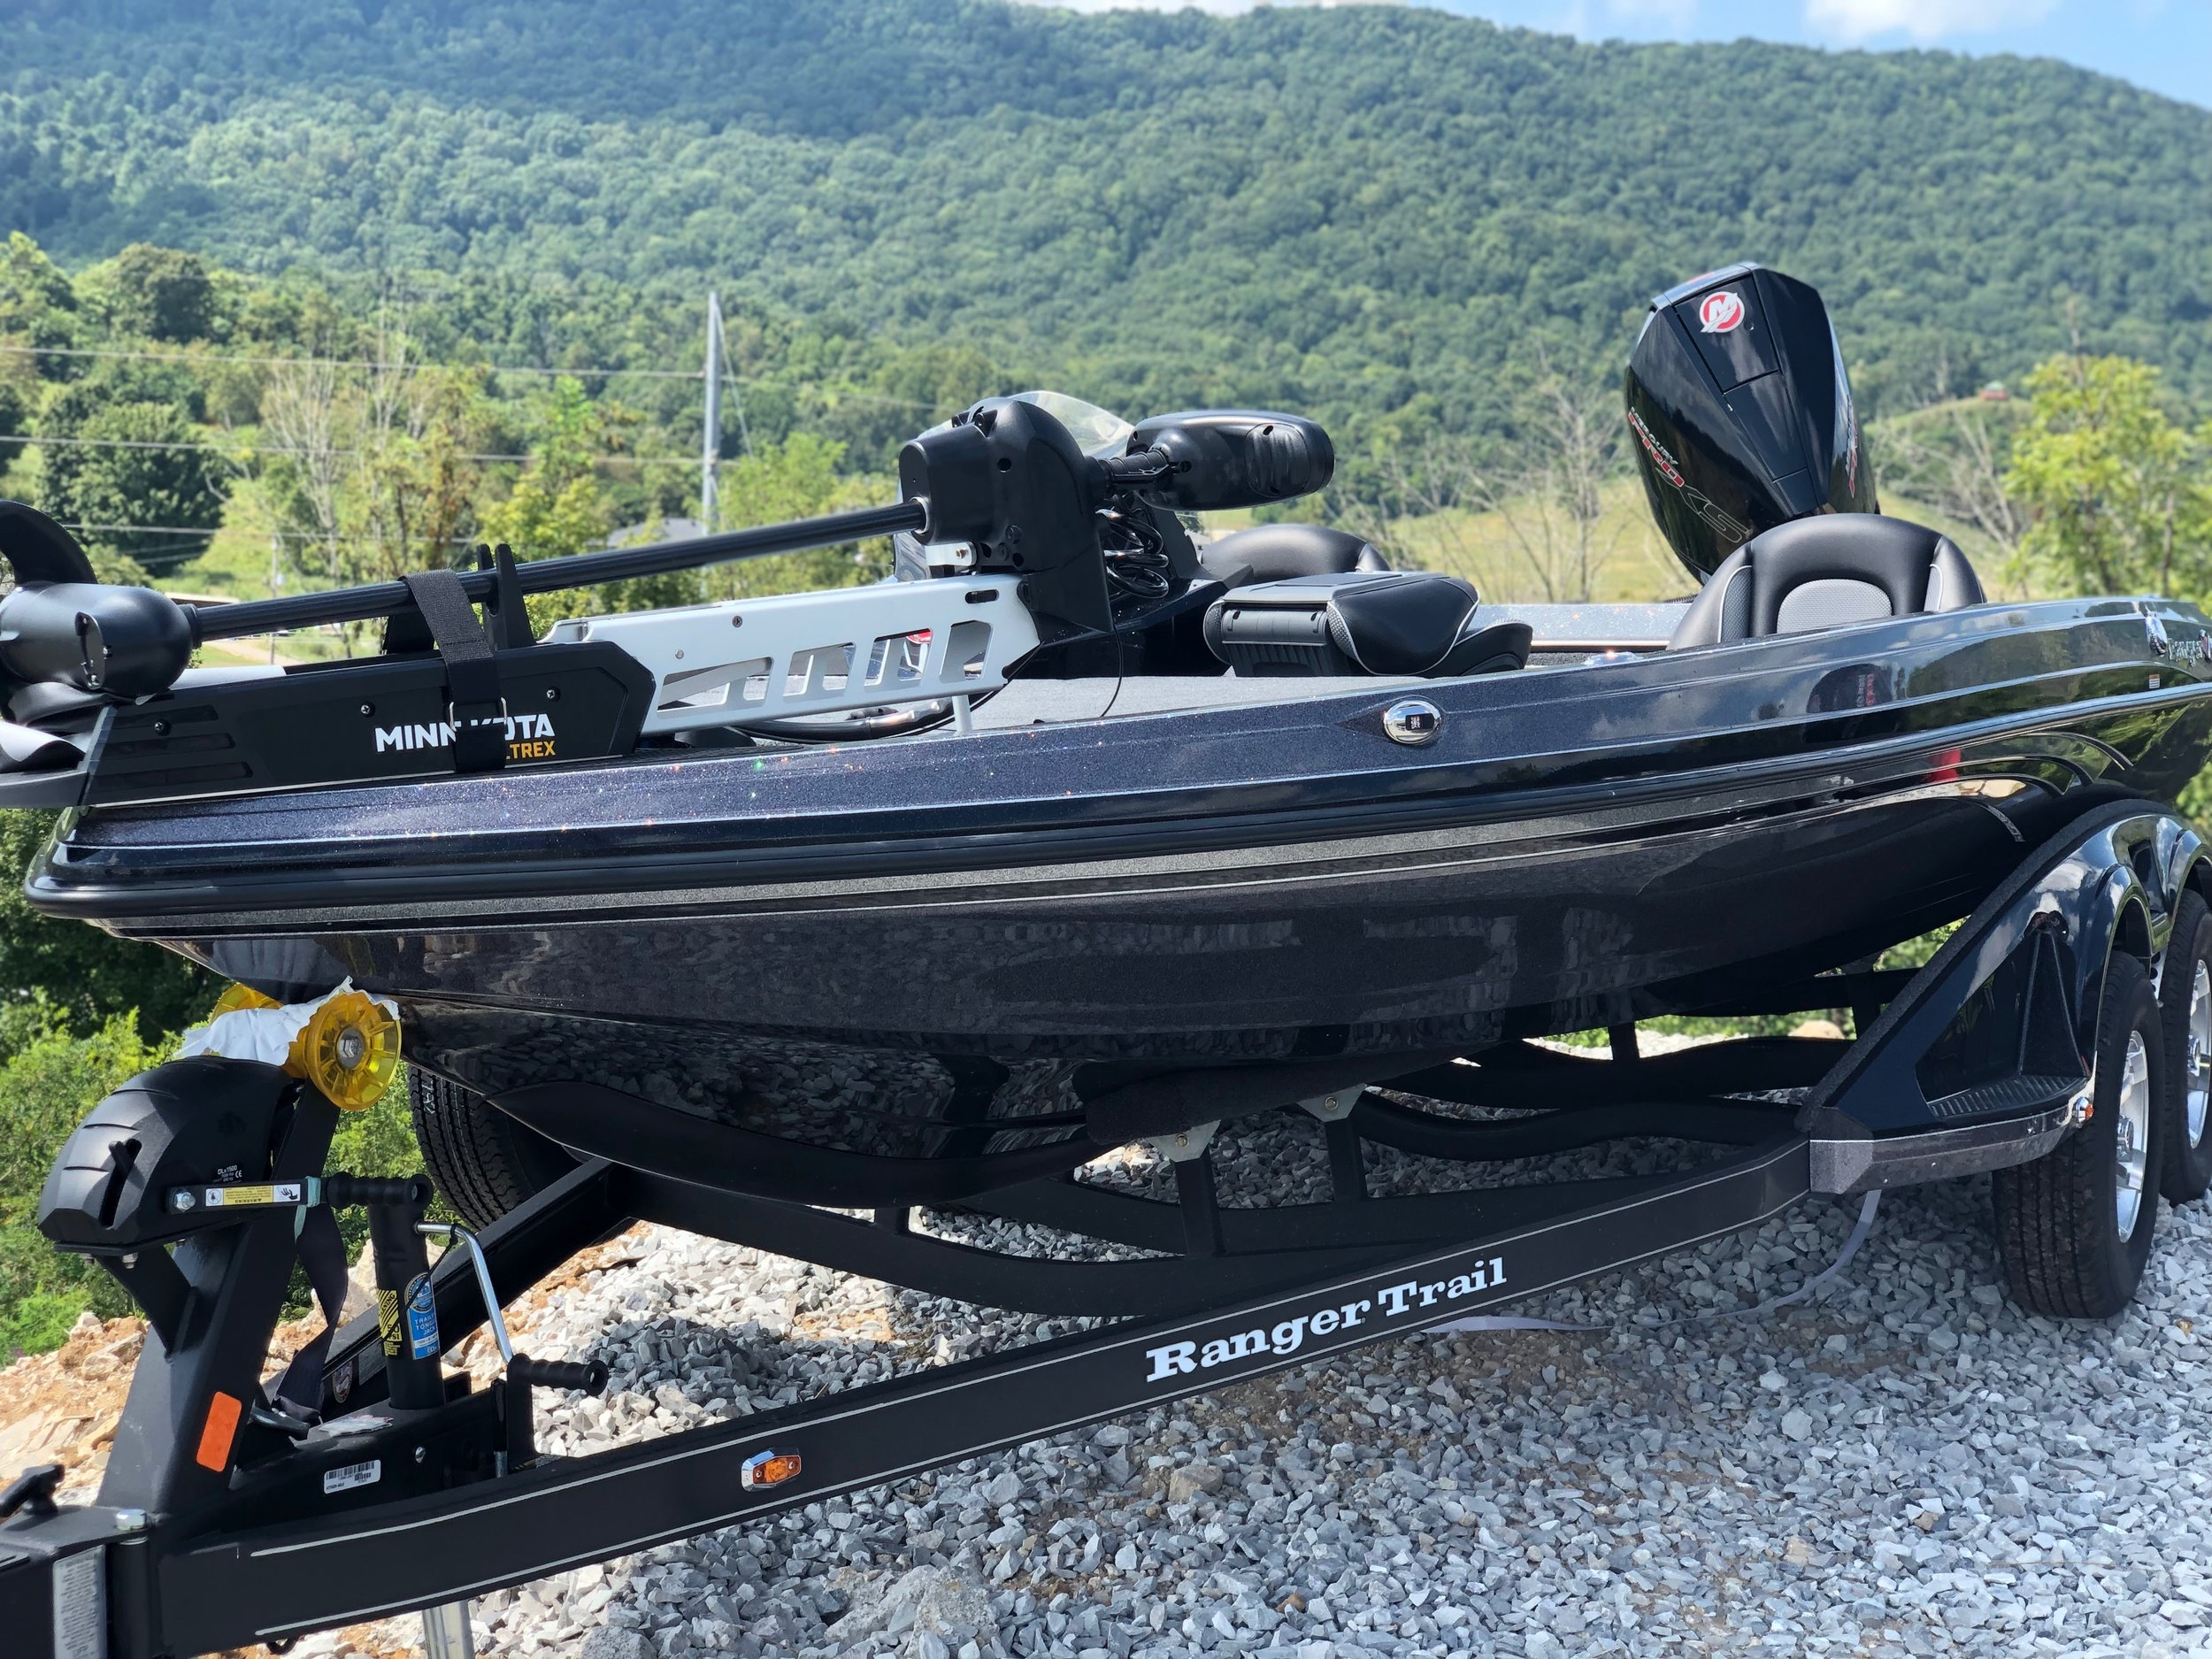 Ranger Z519 - This 2020 all black Z519 Ranger includes, Minn Kota ultrex, two Lowrance hook depth finder, plenty of storage, extra seat, cover, trailer with extra tire, ladder, and detachable tongue on trailer. Call for Price!!! Click here for more pictures.